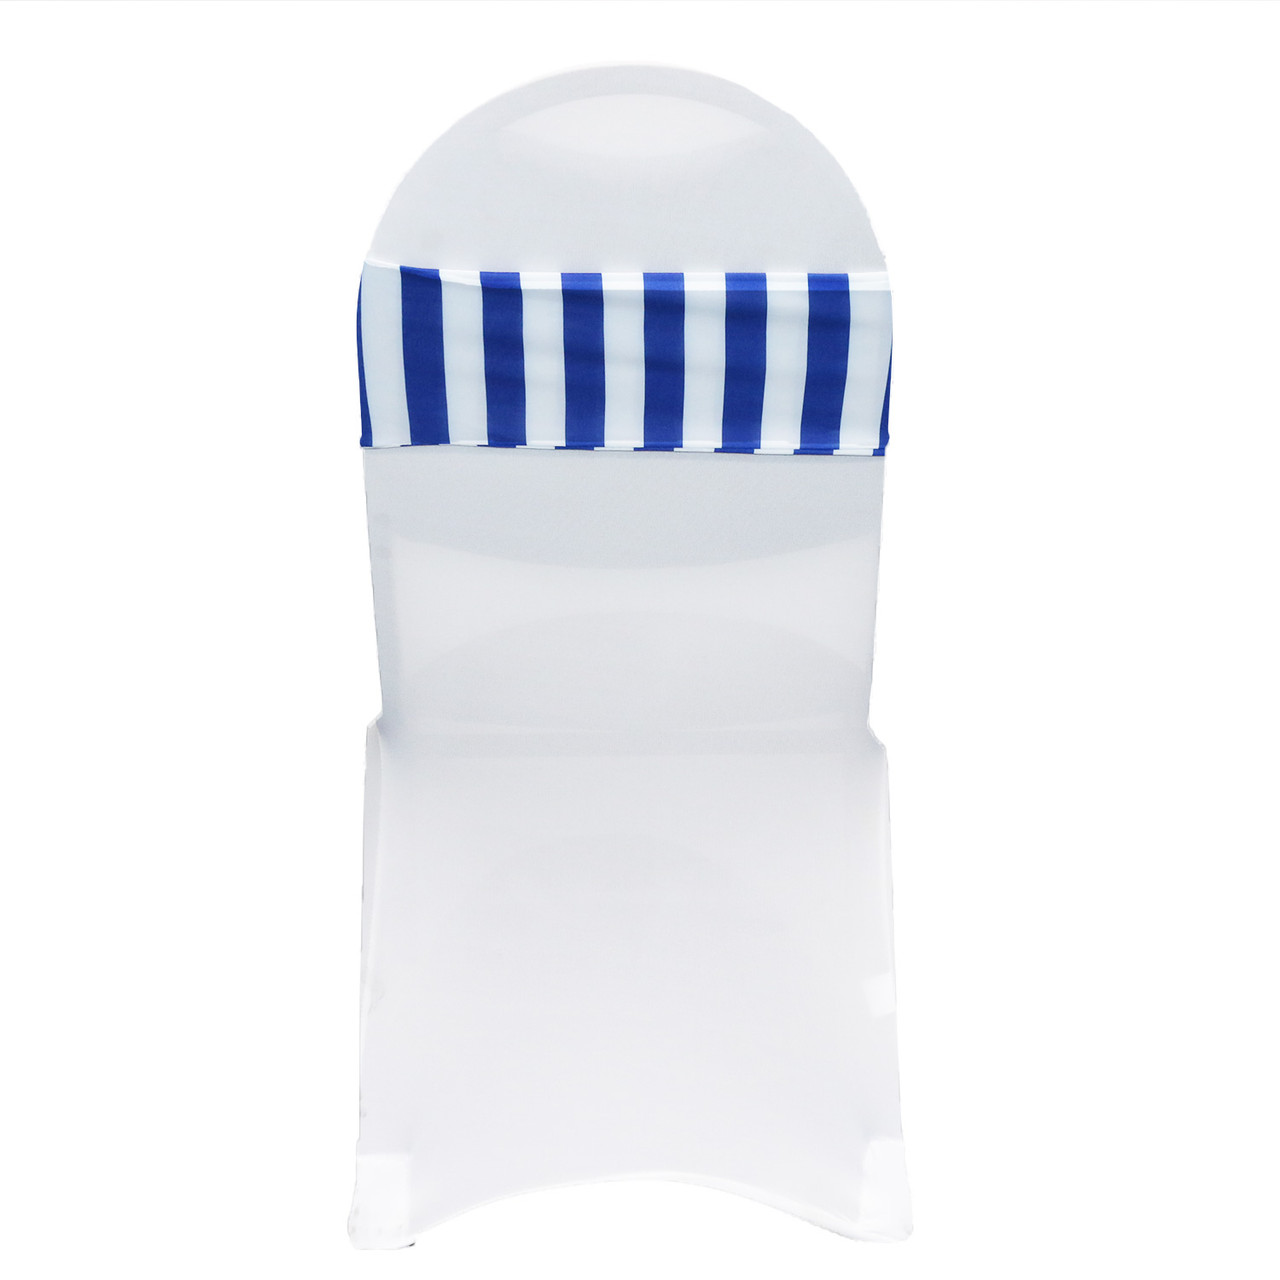 Superb 10 Pack Stretch Spandex Striped Chair Bands Royal Blue White Pabps2019 Chair Design Images Pabps2019Com